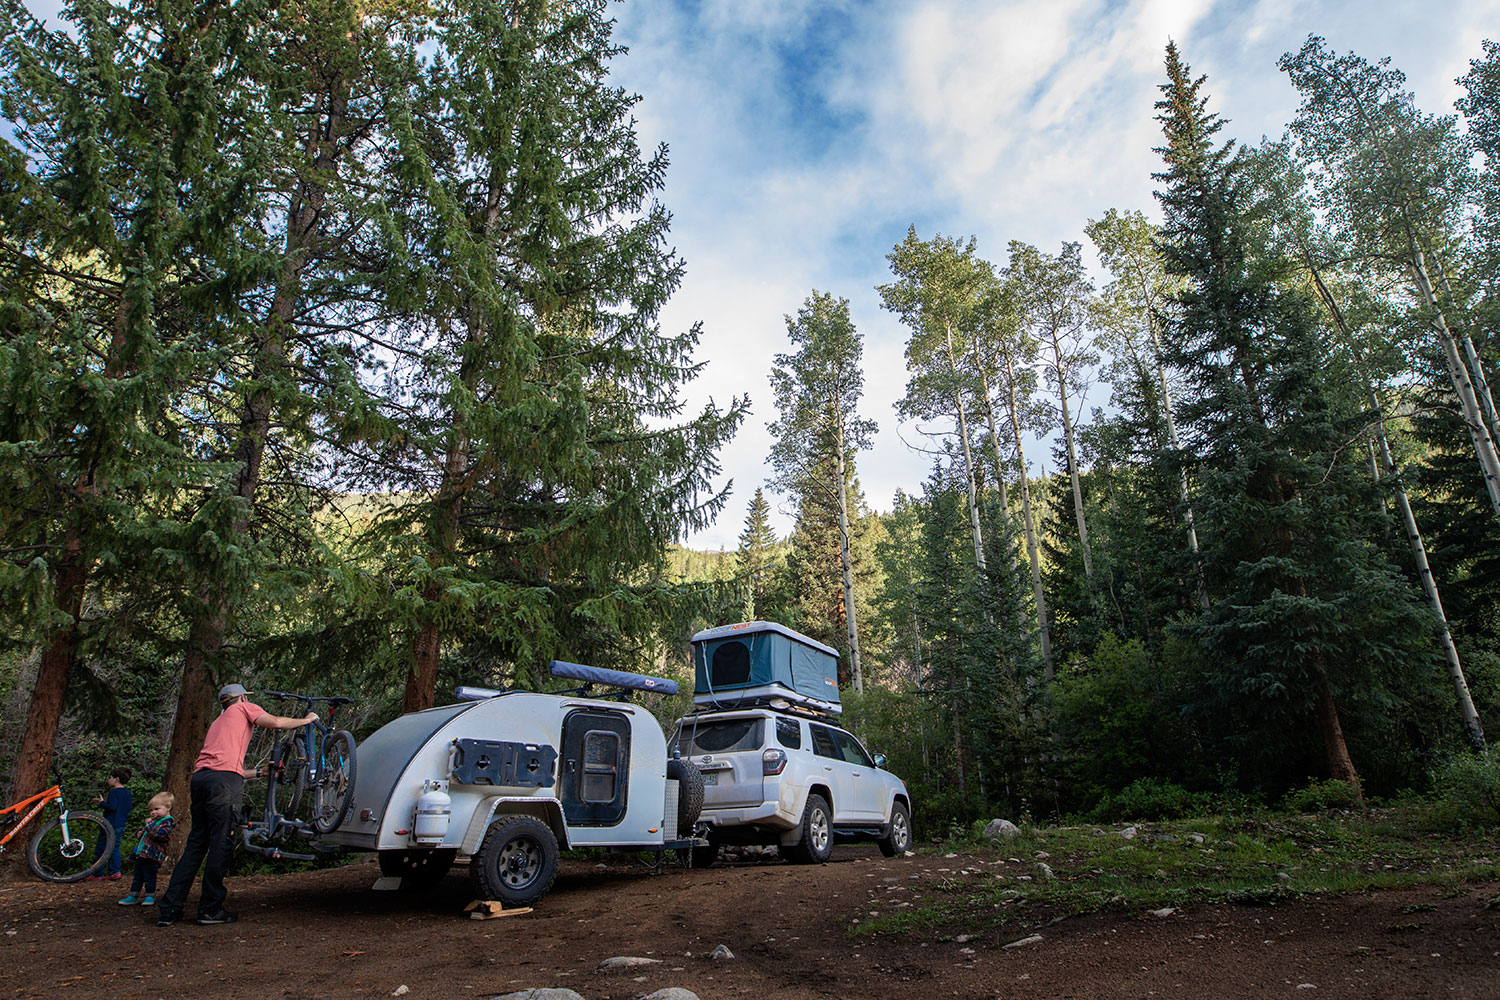 Teardrop camper and rooftop tent in the mountains